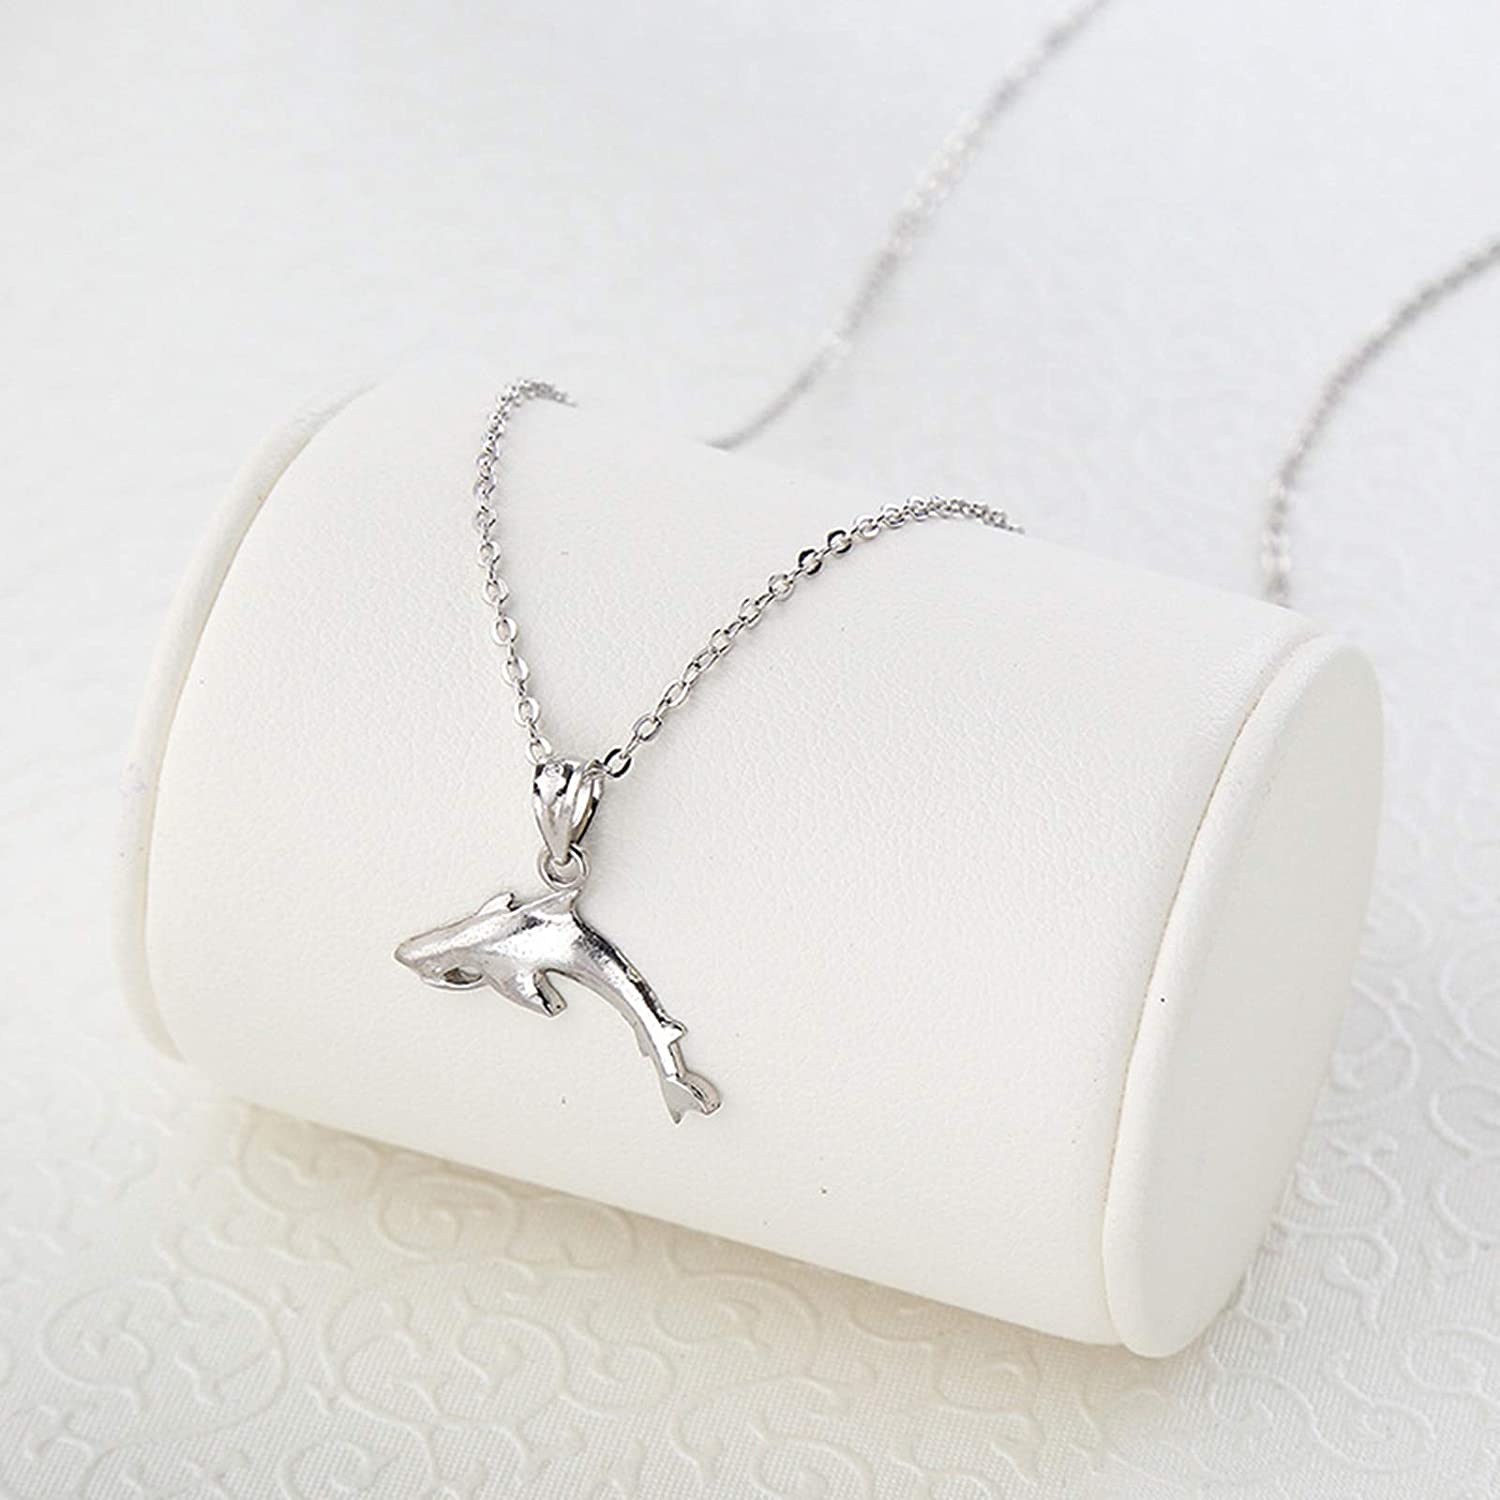 KnSam Womens Necklace Silver Shark Name Necklace Personalized Color Silver